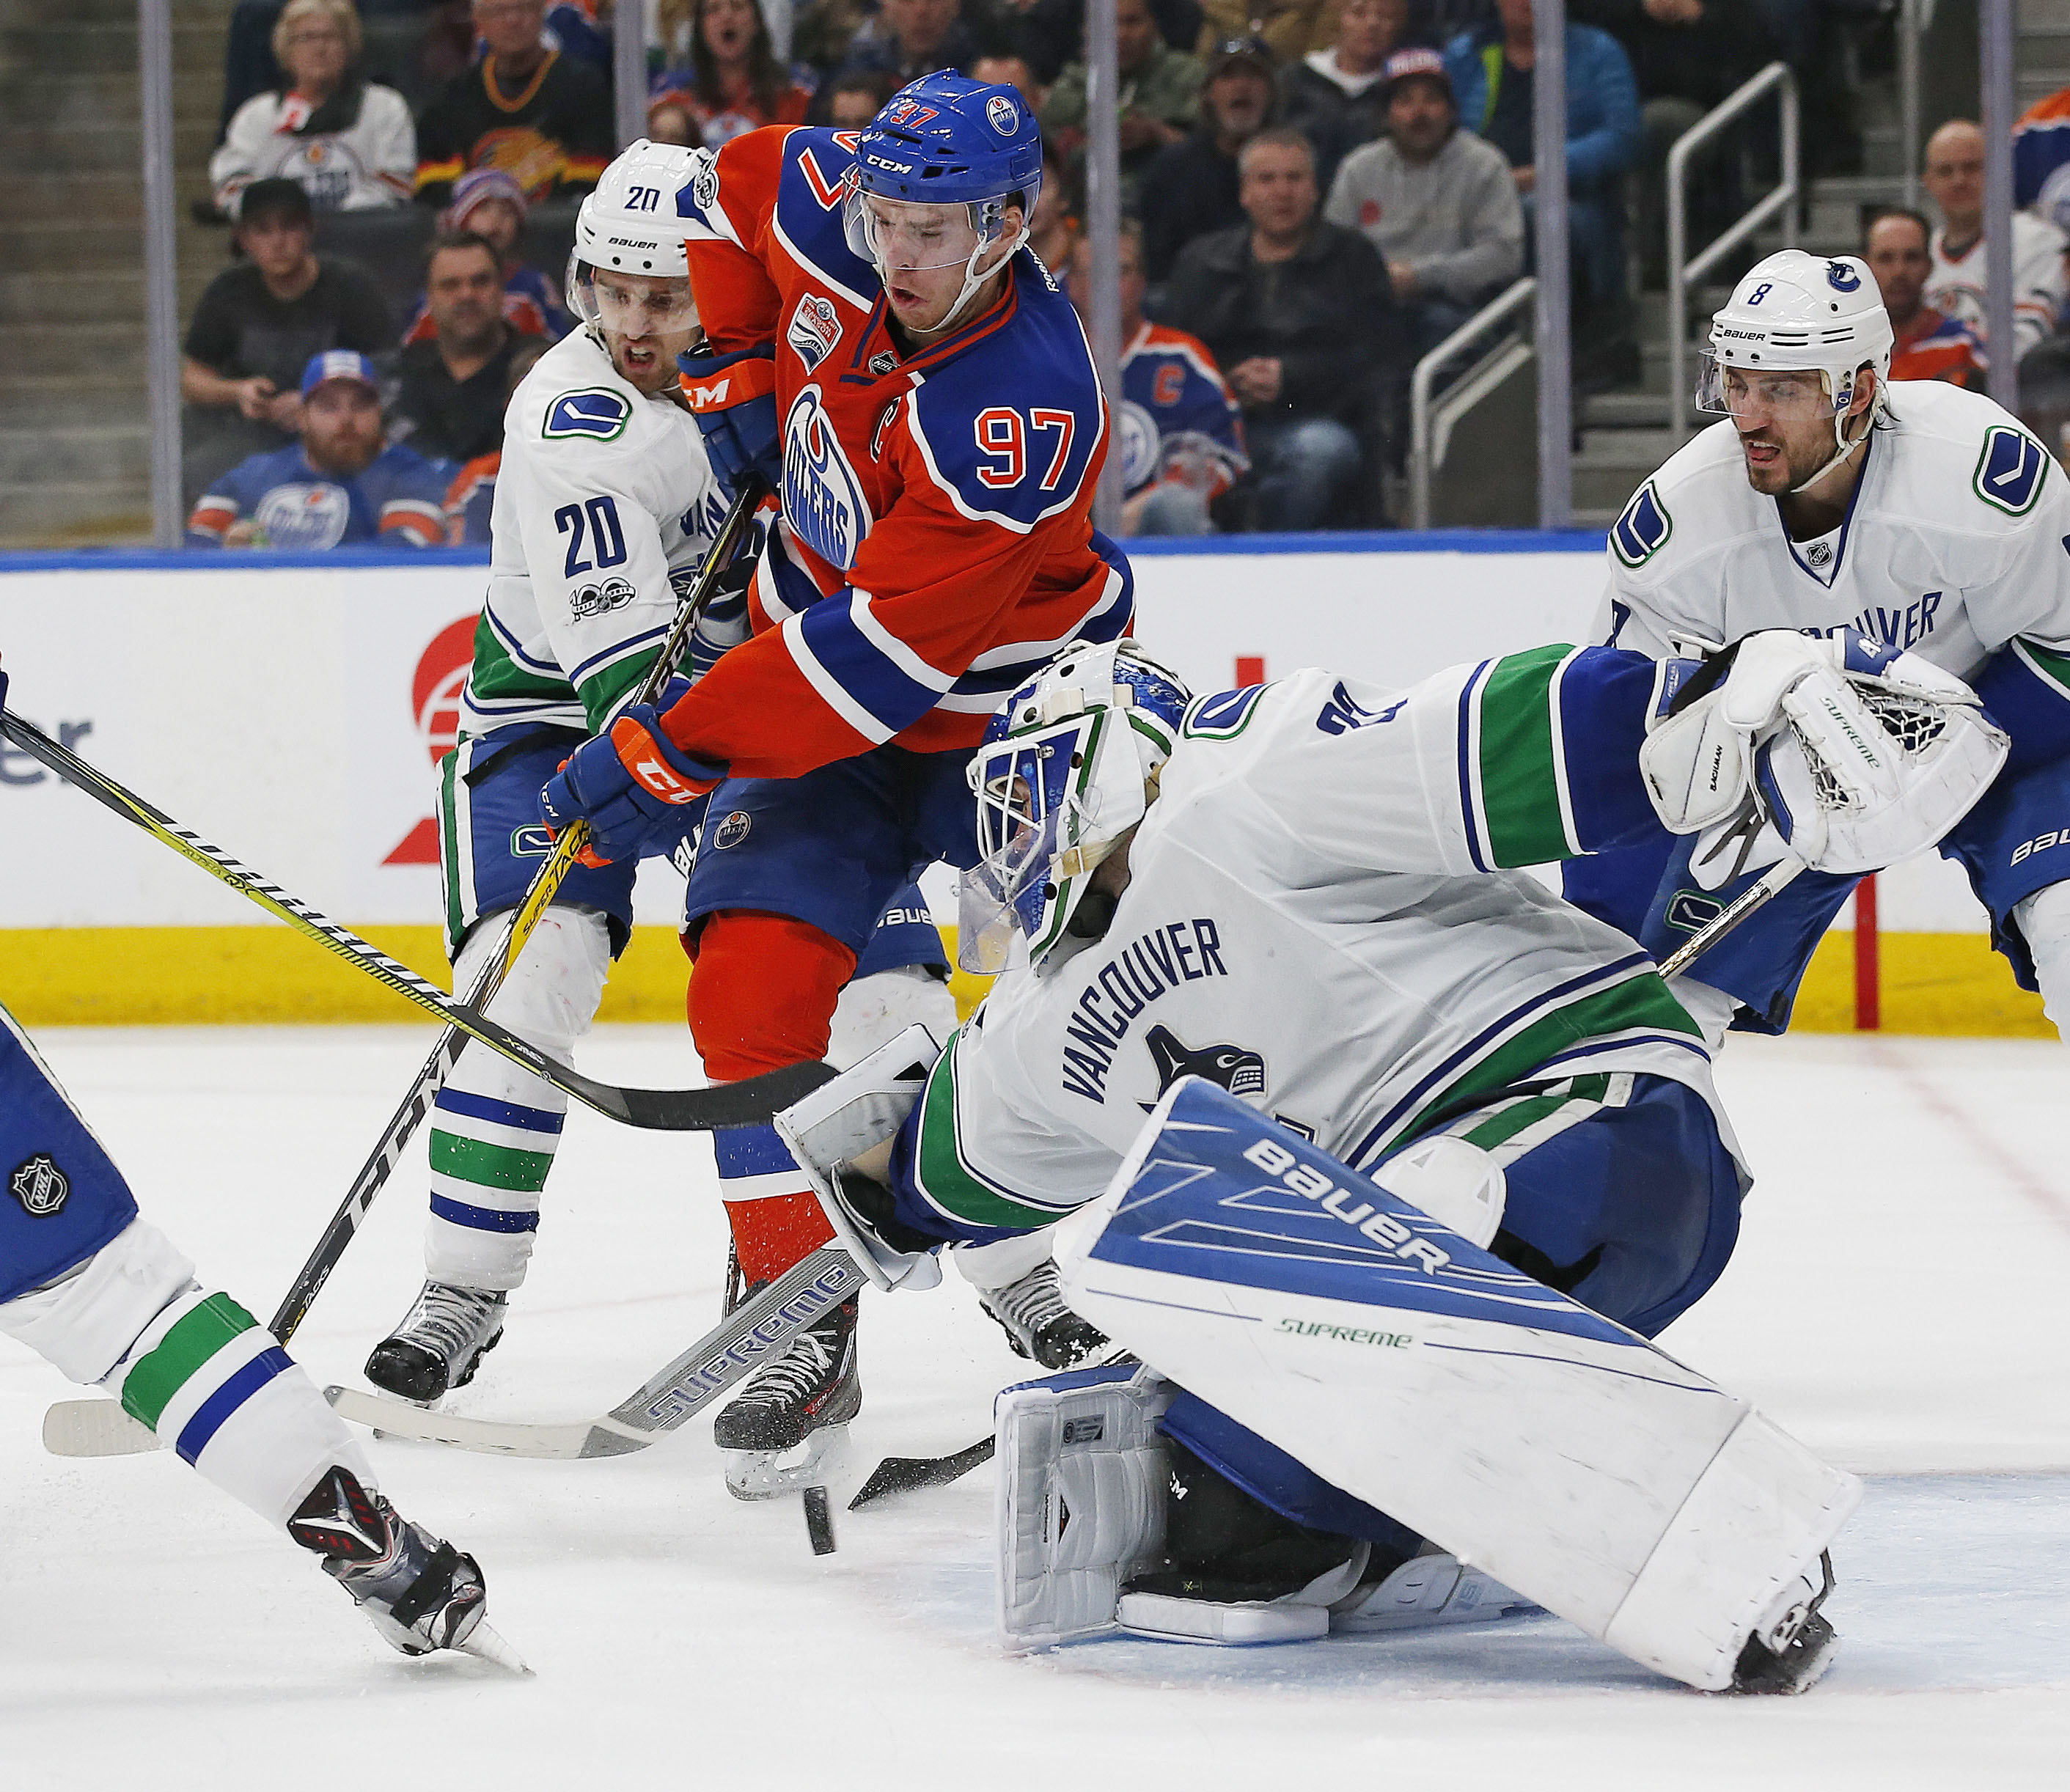 Oilers beat Canucks 3-2 to clinch second in Pacific Division